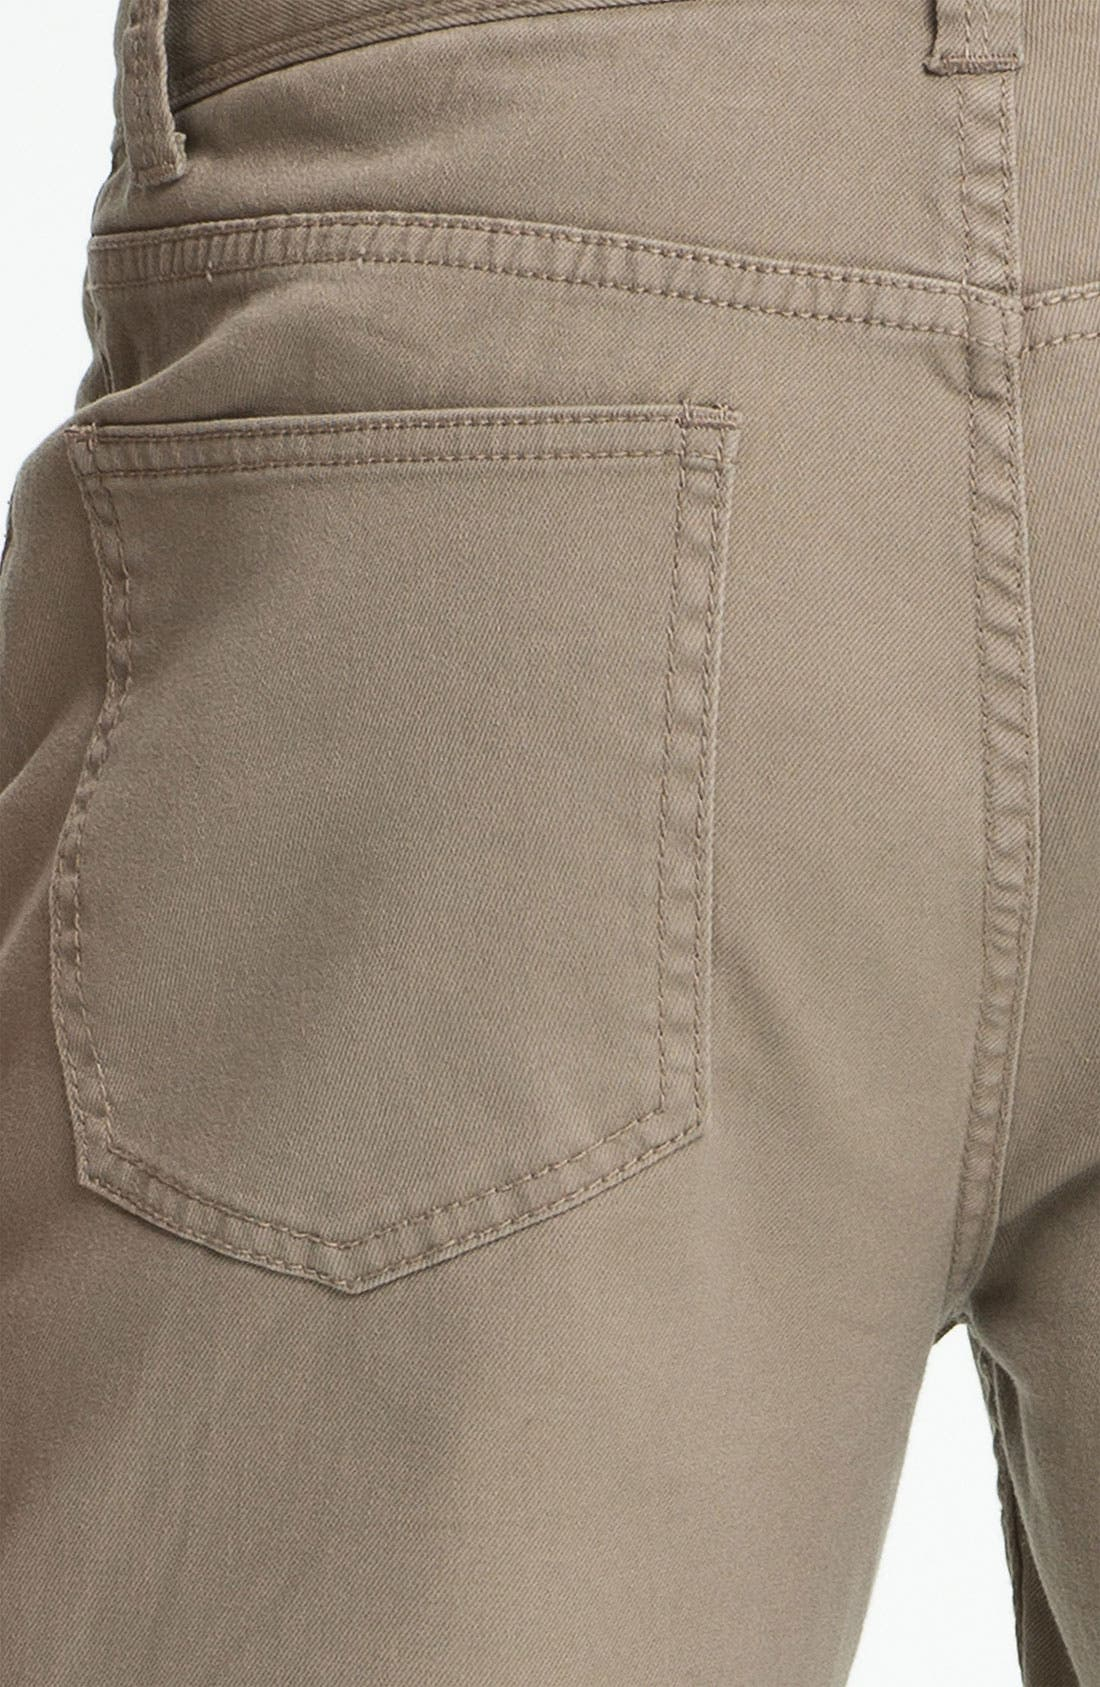 Alternate Image 3  - O'Neill 'Dylan' Slim Five Pocket Pants